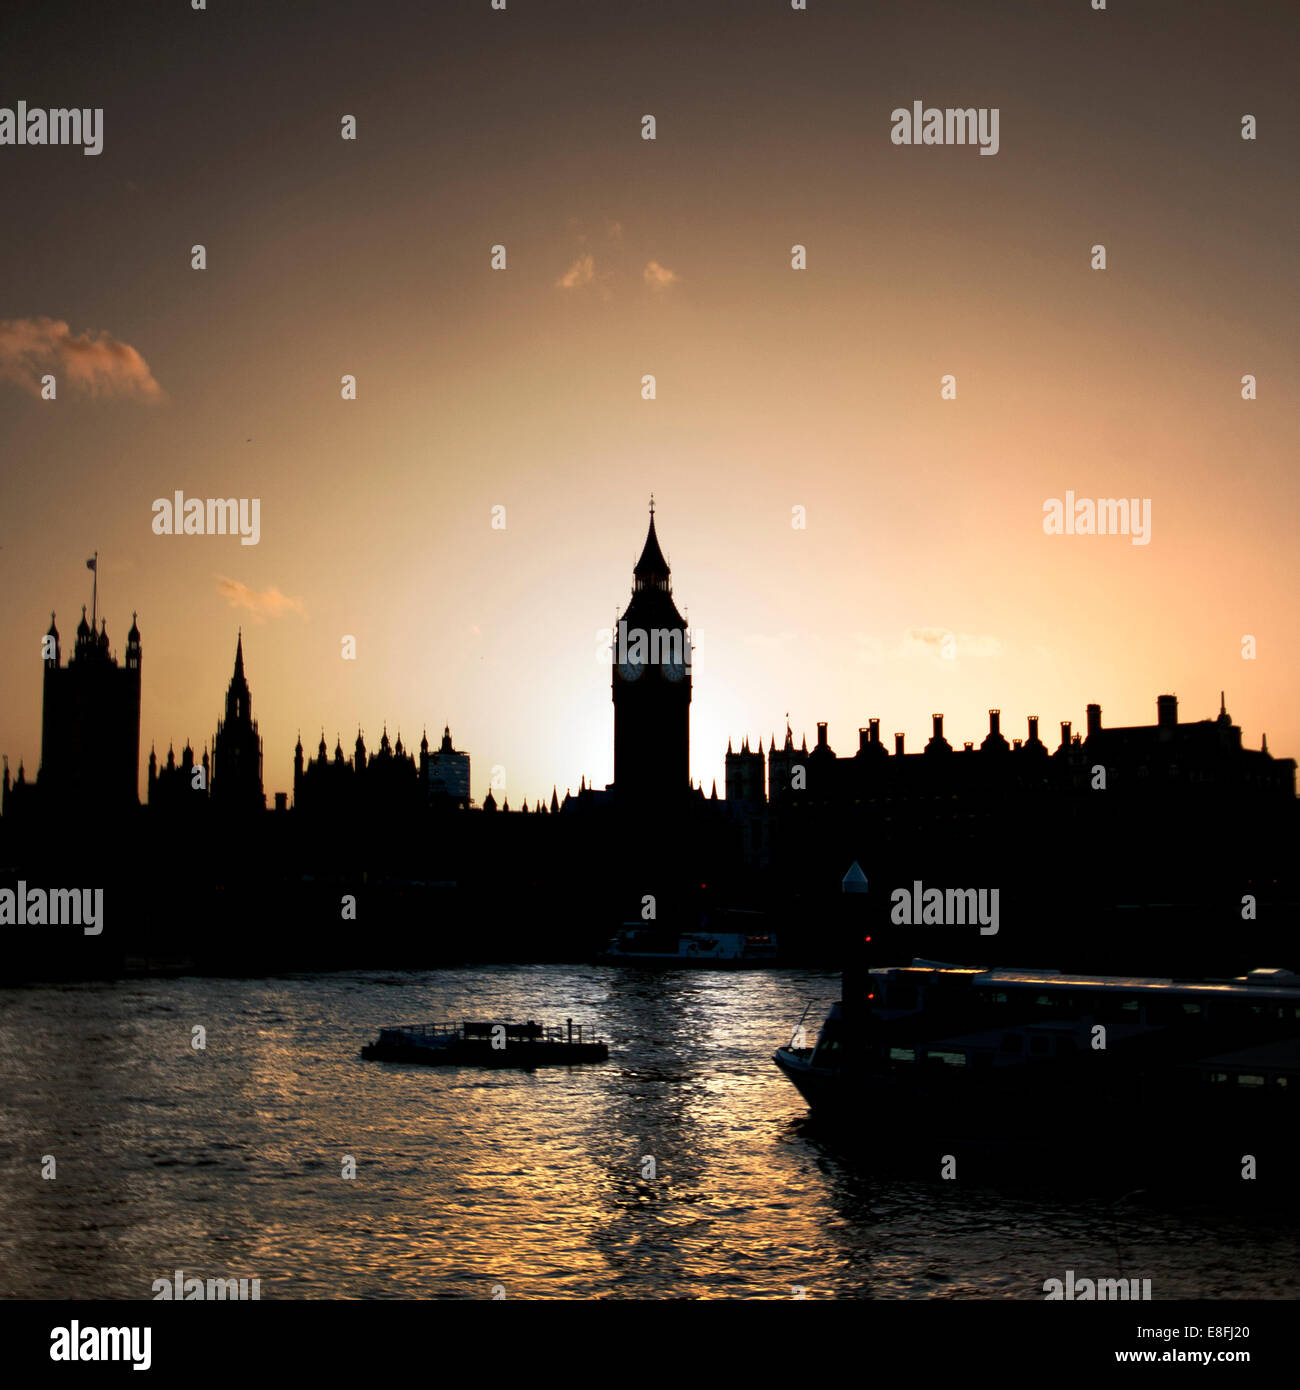 Houses of Parliament und Big Ben bei Sonnenuntergang, London, England, UK Stockbild